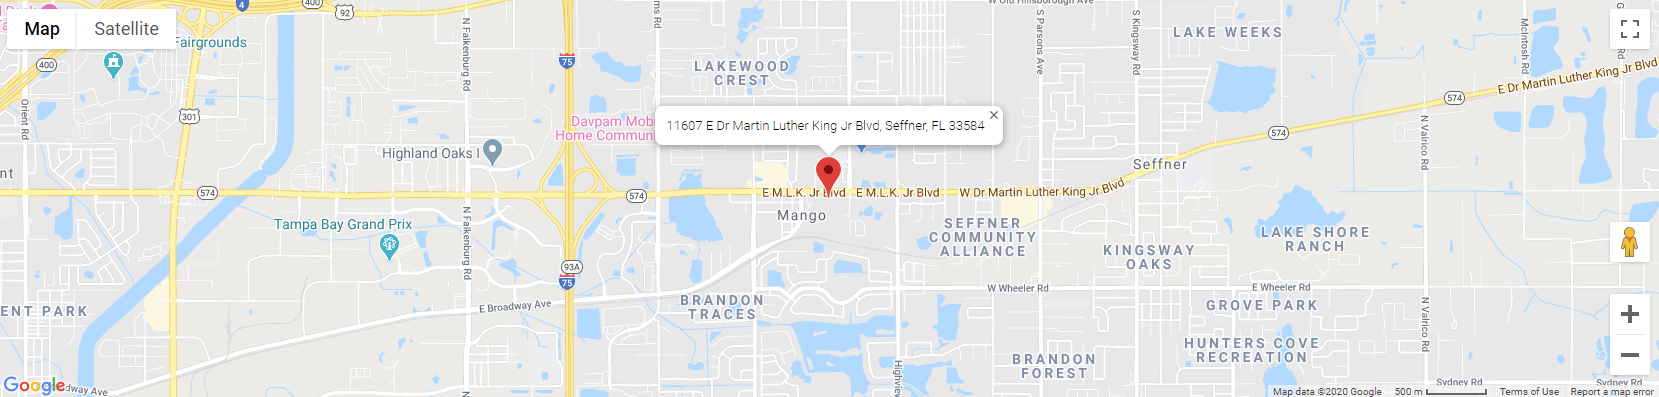 Our Location - 11607 E Dr Martin Luther King Jr Blvd, Seffner, FL 33584